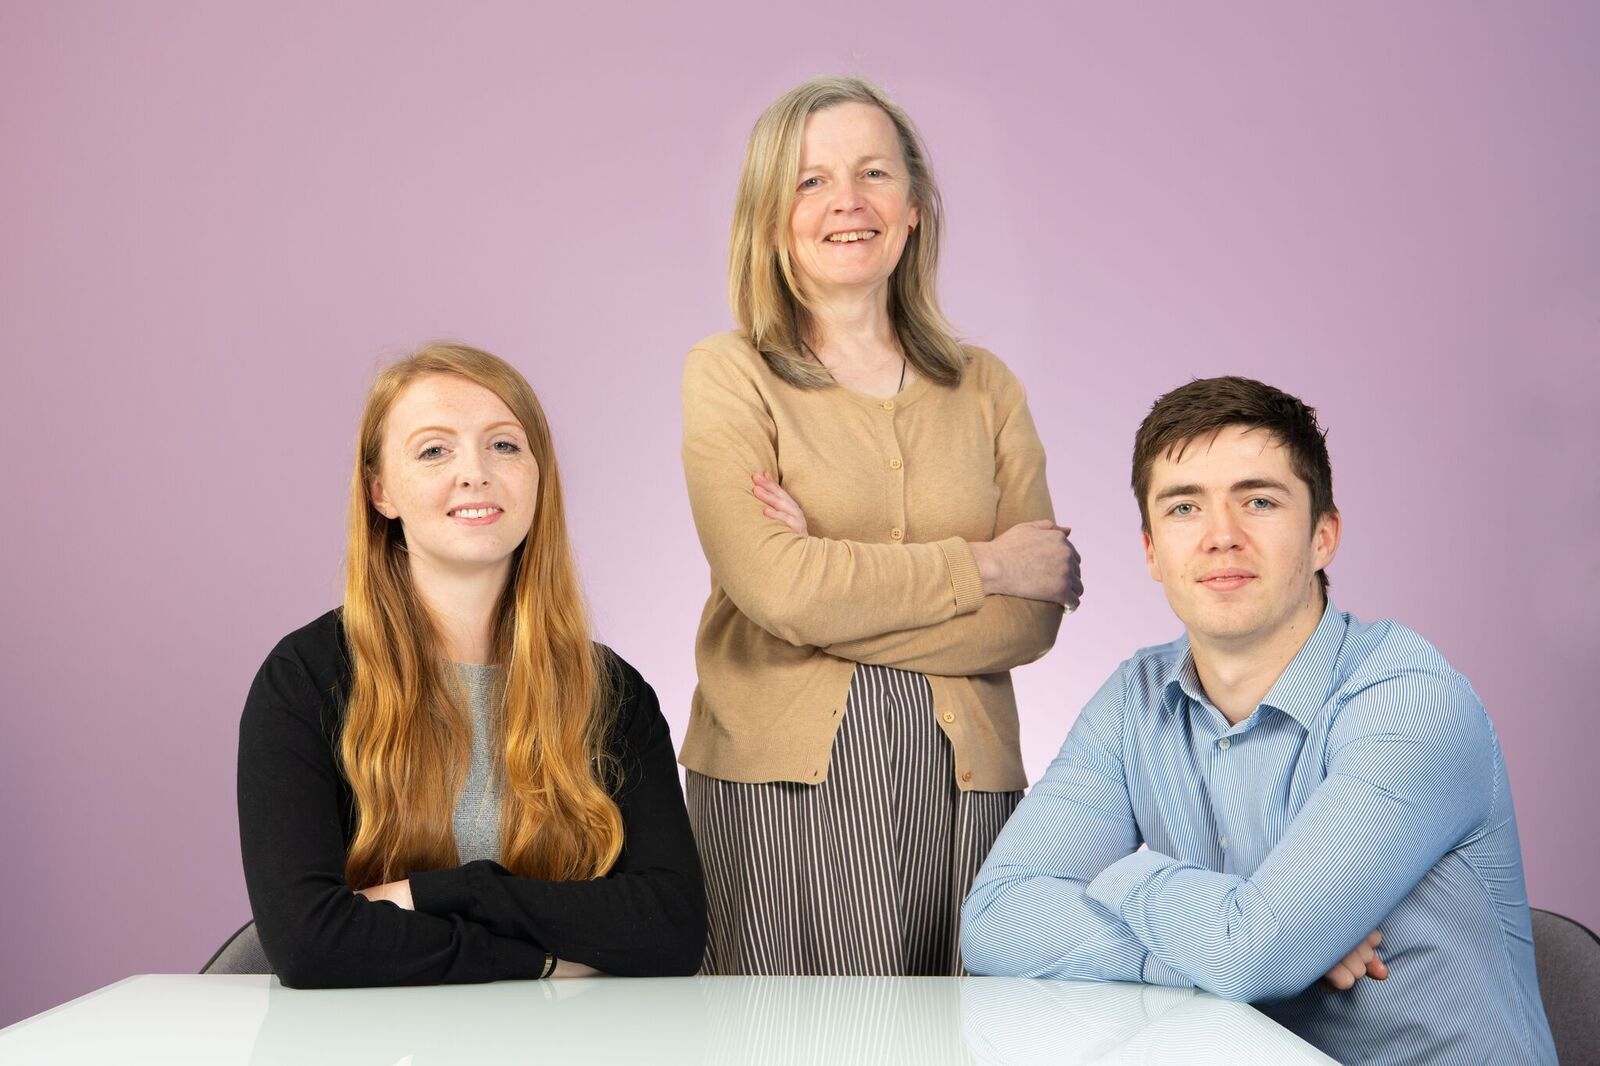 L to R - Ellie Greenwood, Mary McDonagh and Tom Davies